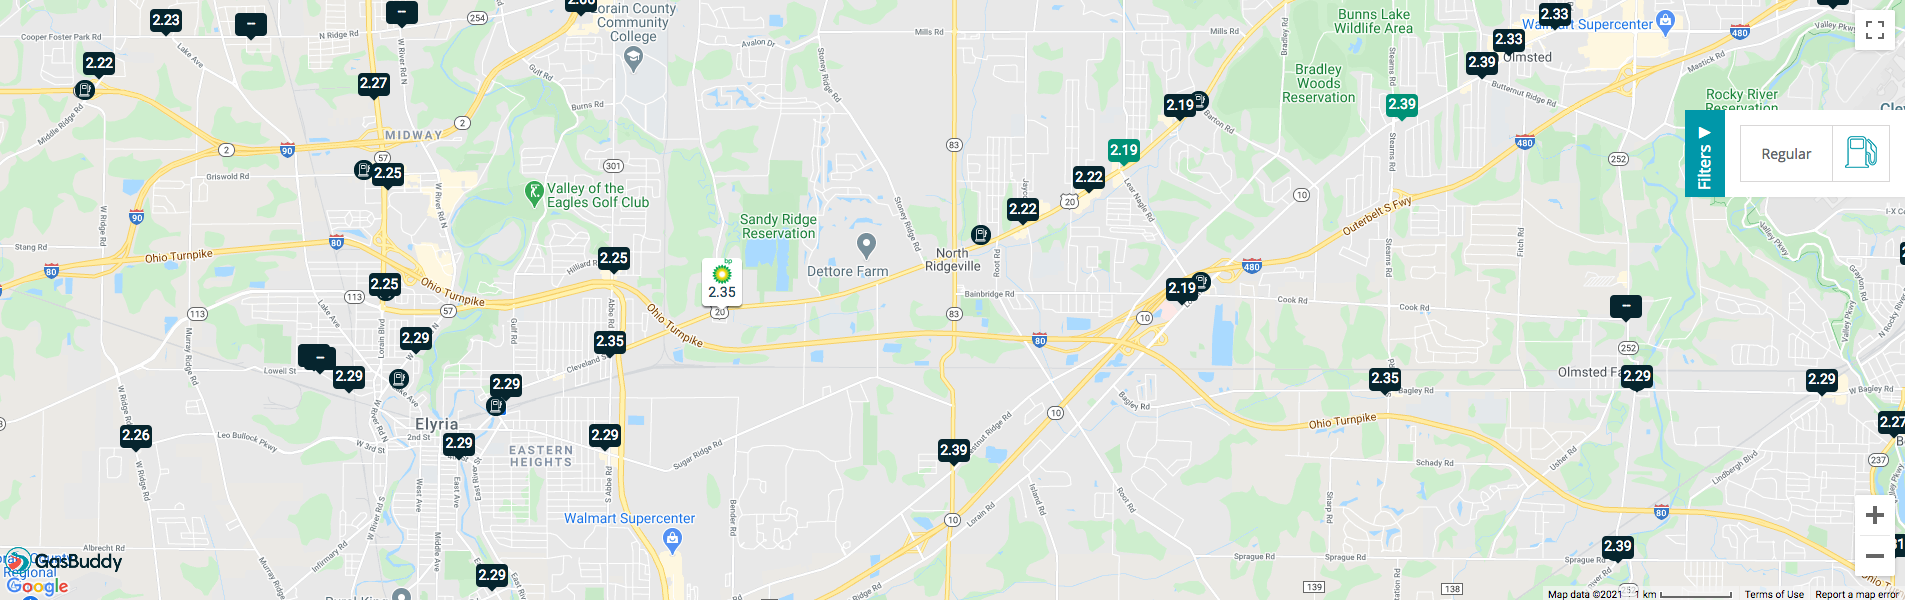 Screenshot_2021-01-29 USA and Local National Gas Station Price Heat Map - GasBuddy com.png